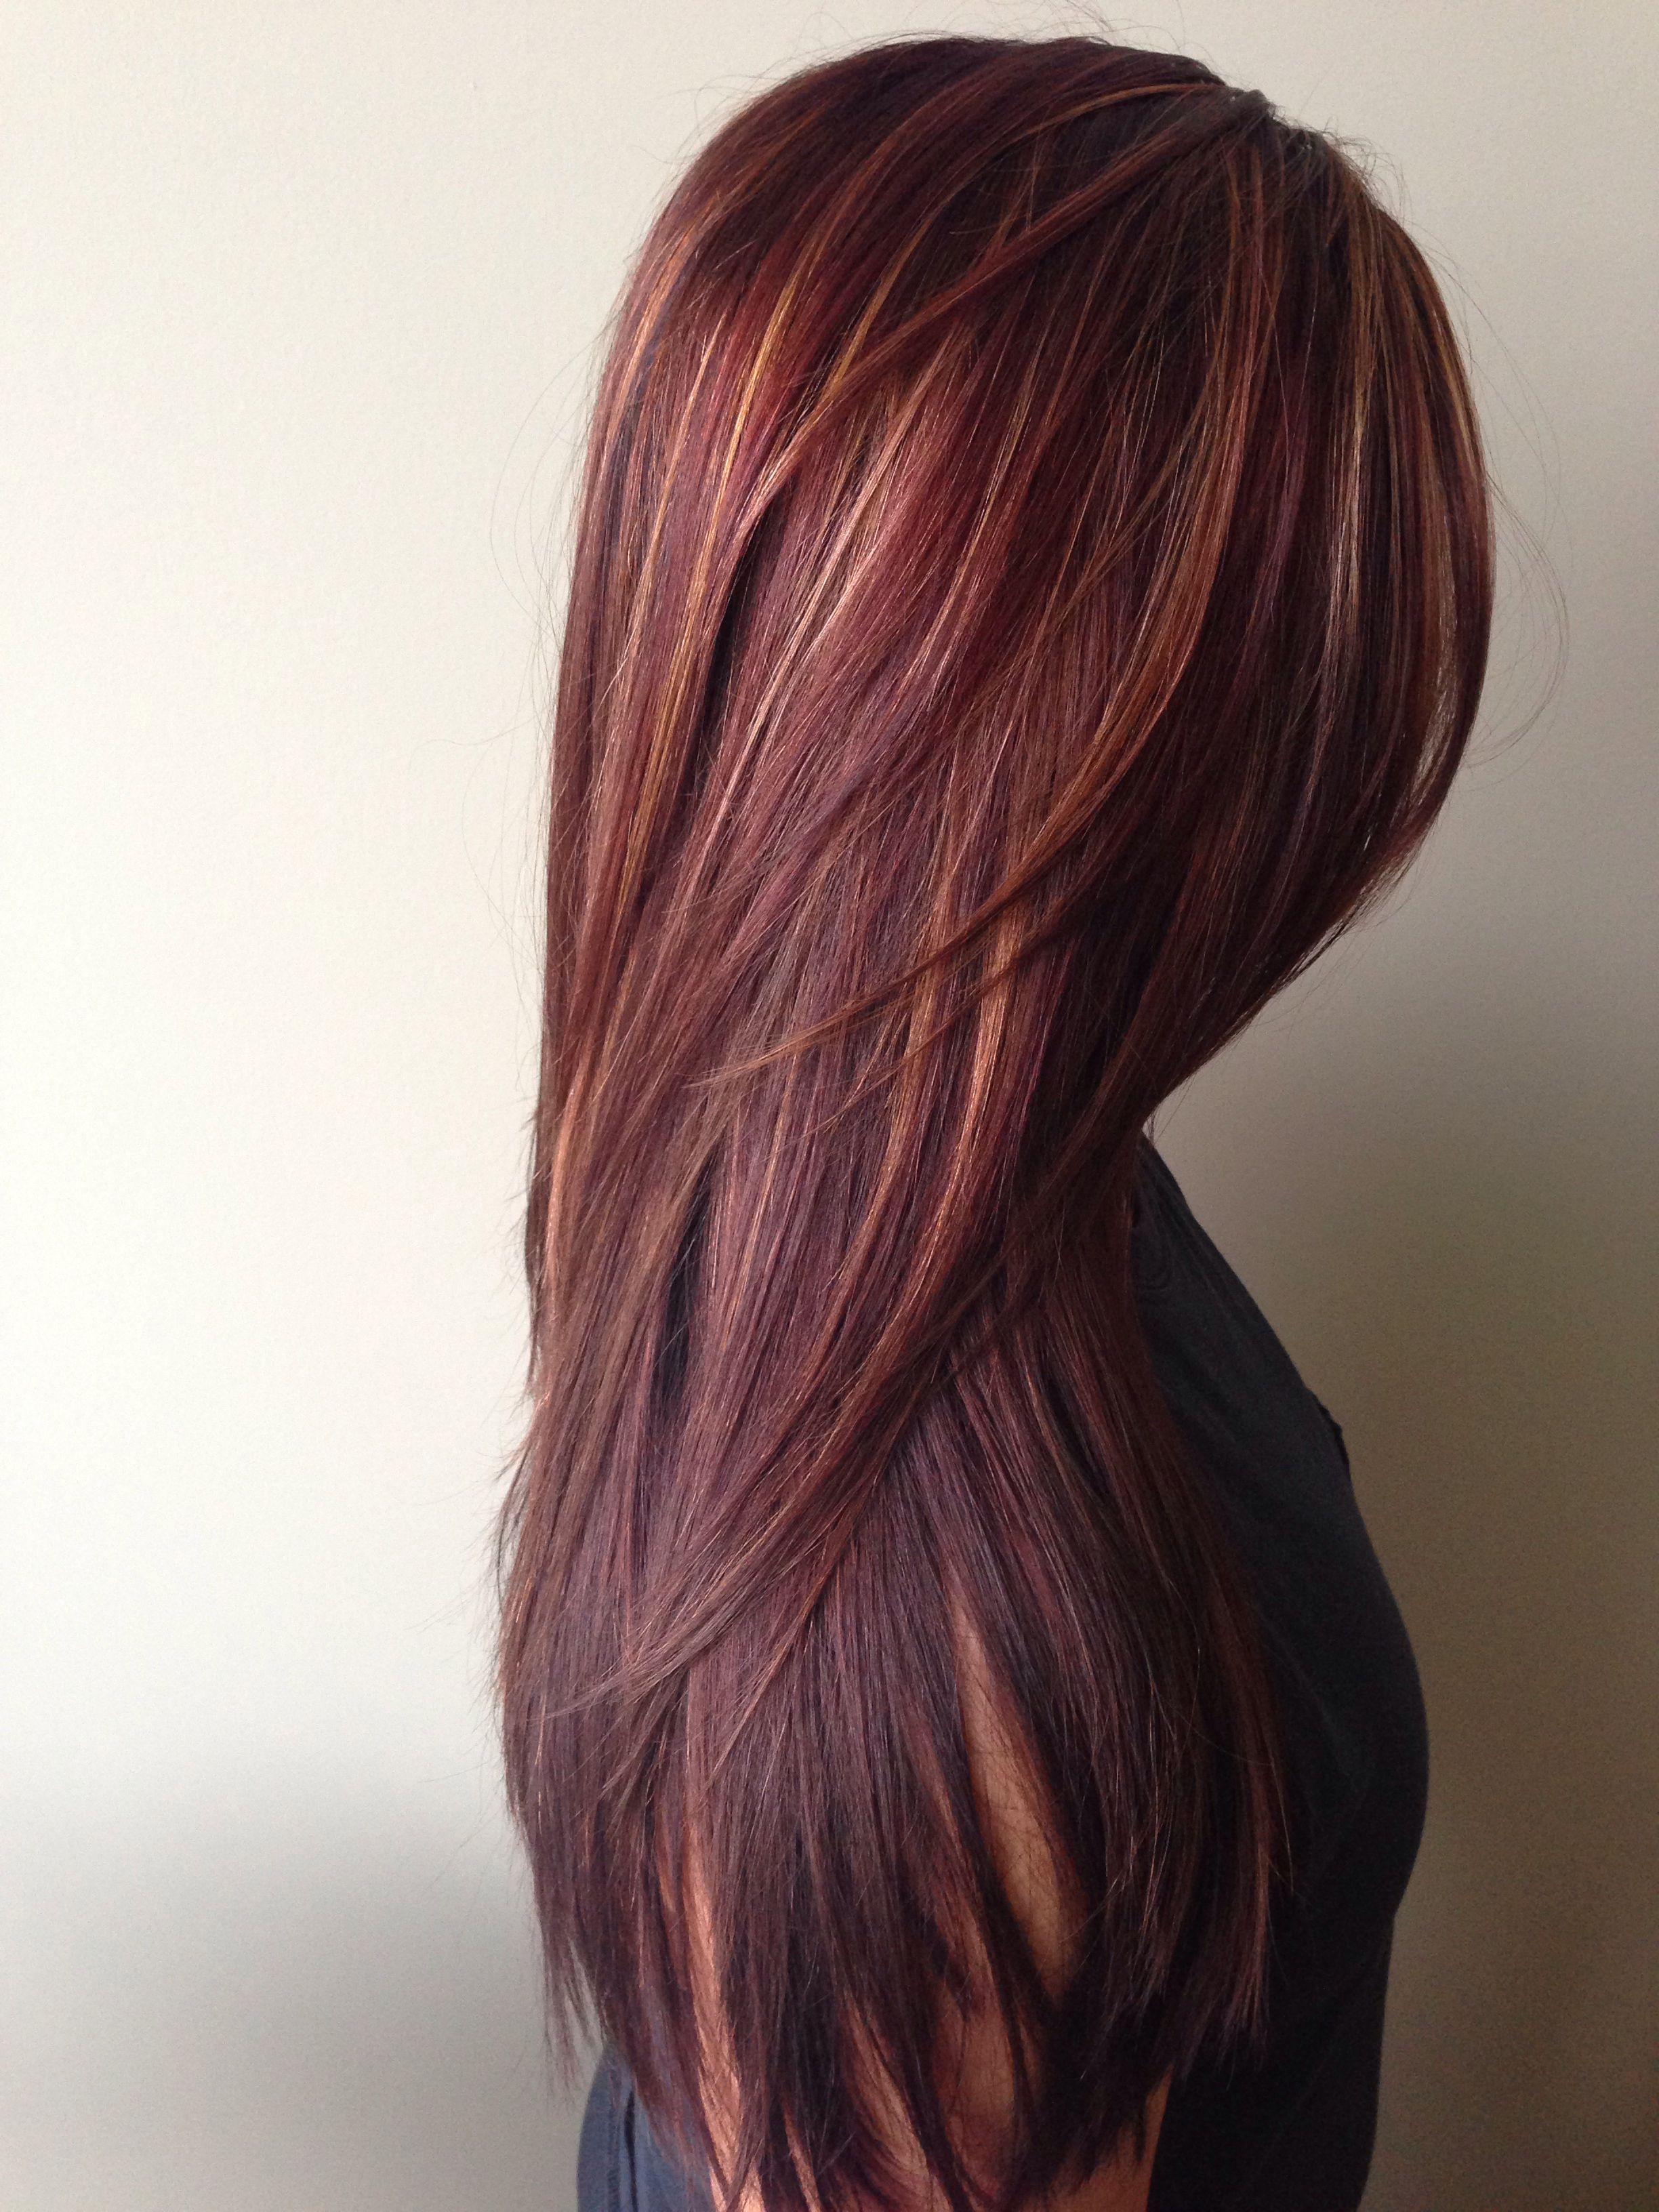 Rich Red With Added Caramel Highlights Luxe Design Colored Hair Tips Hair Styles Hair Color